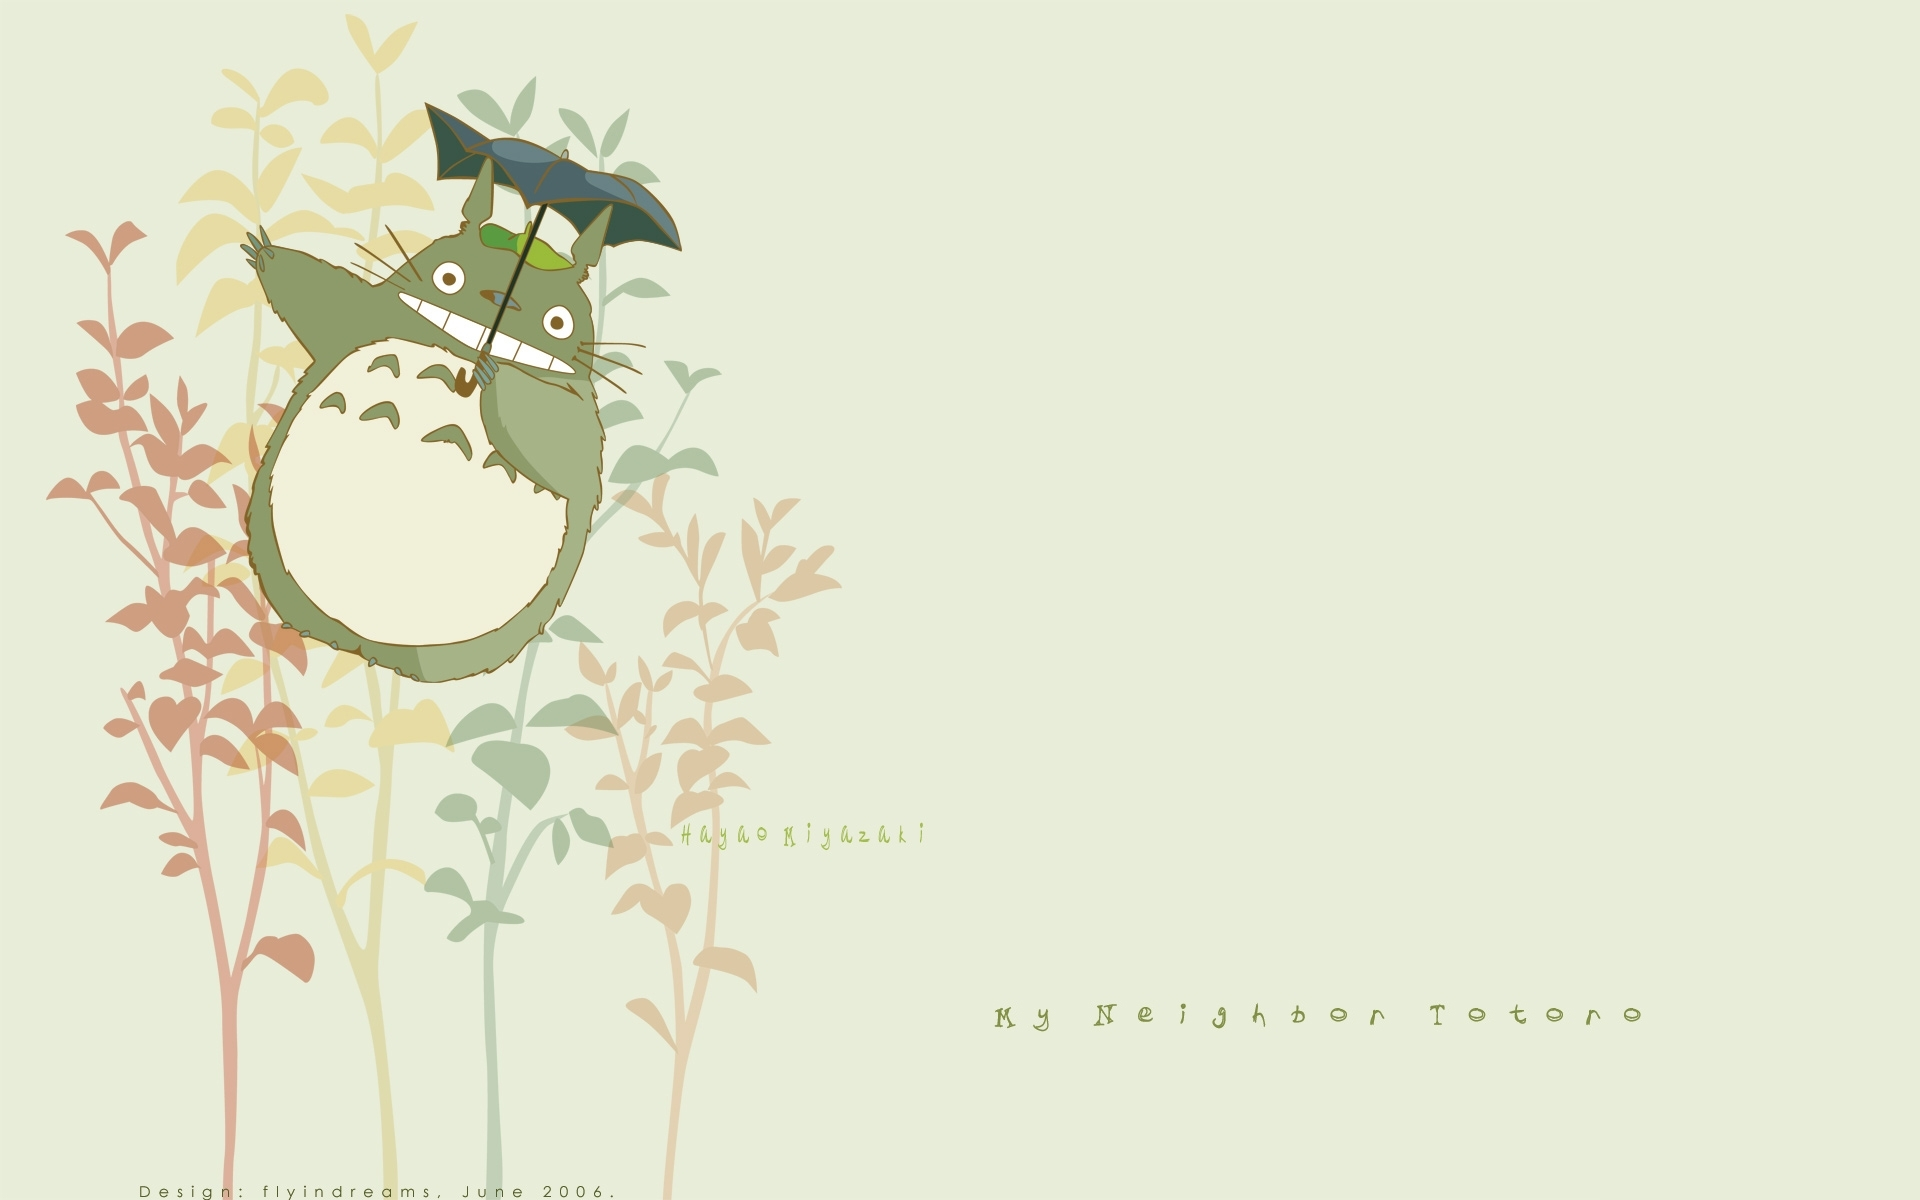 Totoro Studio Ghibli Art Wallpaper 1920x1200 Full HD Wallpapers 1920x1200